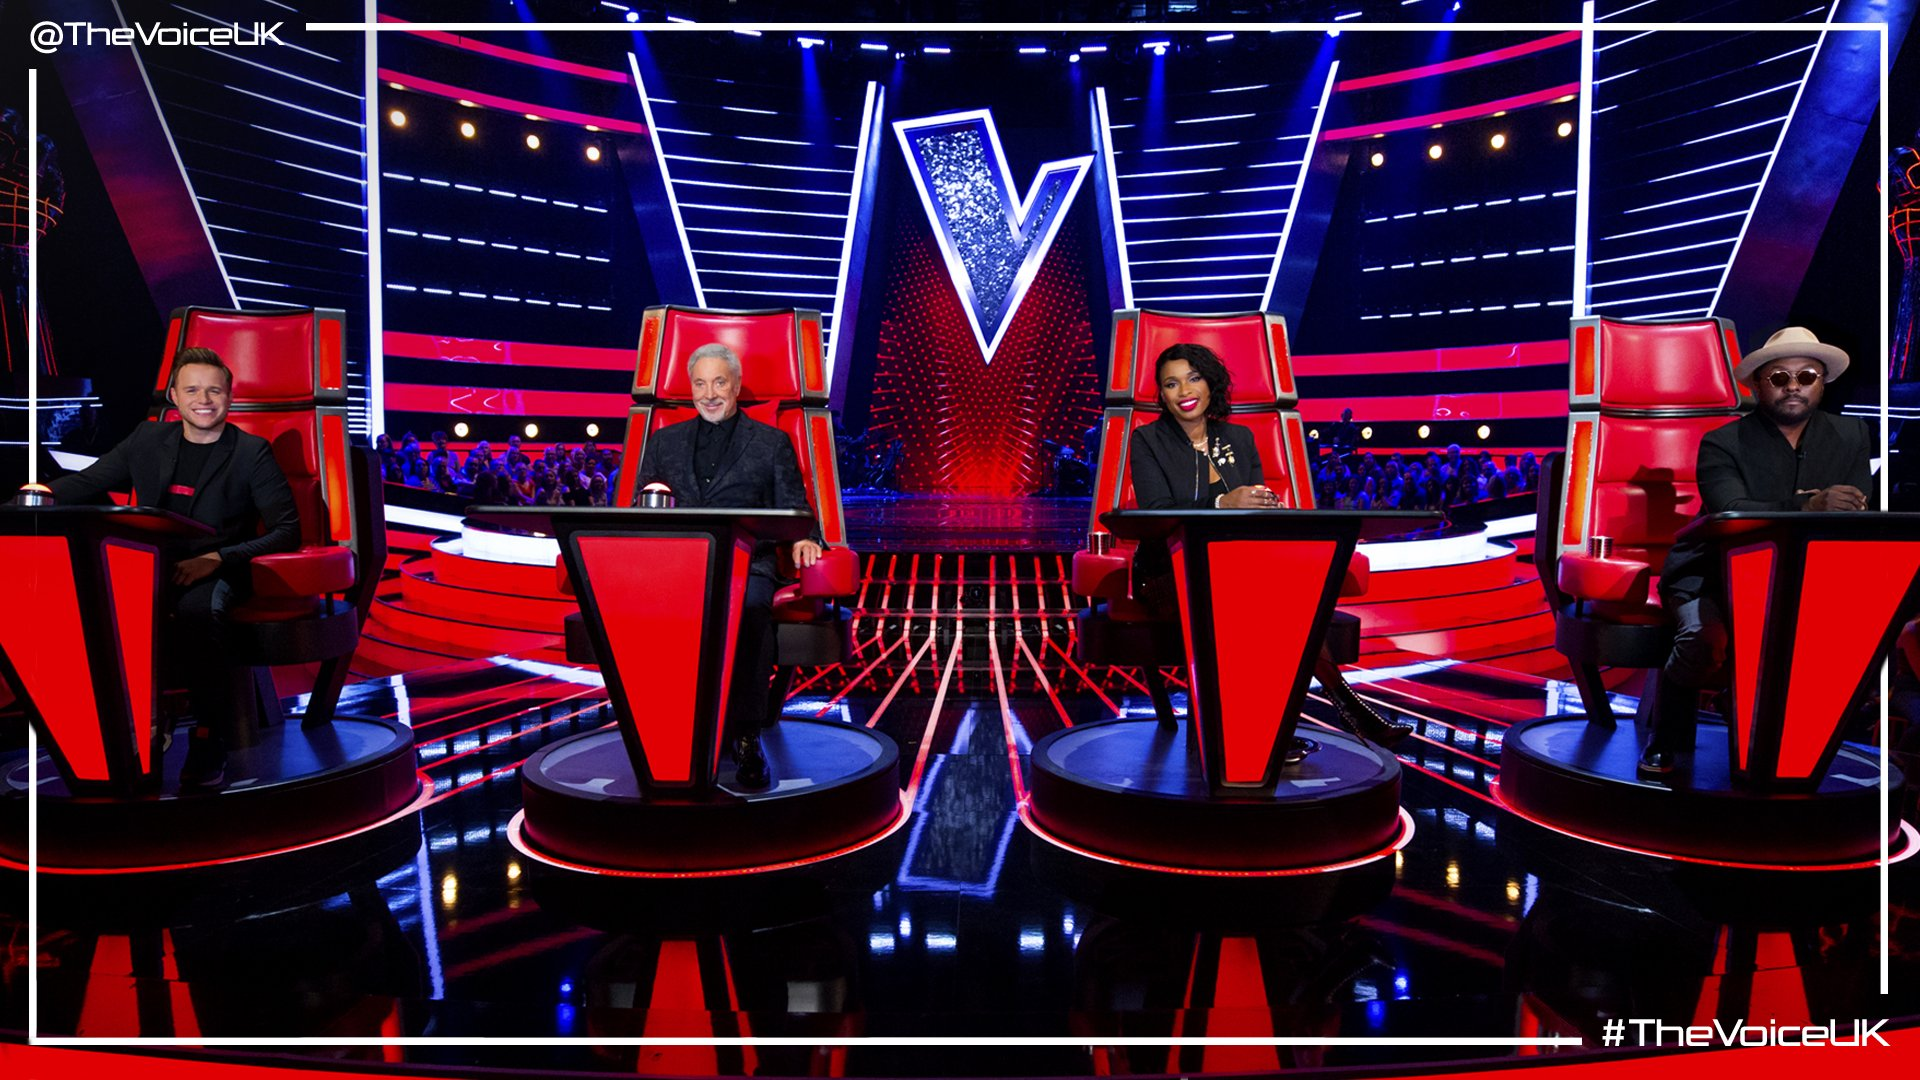 RT @thevoiceuk: Don't our Coaches look right at home? ❤️ Here's your first look at #TheVoiceUK 🚨✌️ https://t.co/BhFGab72vD